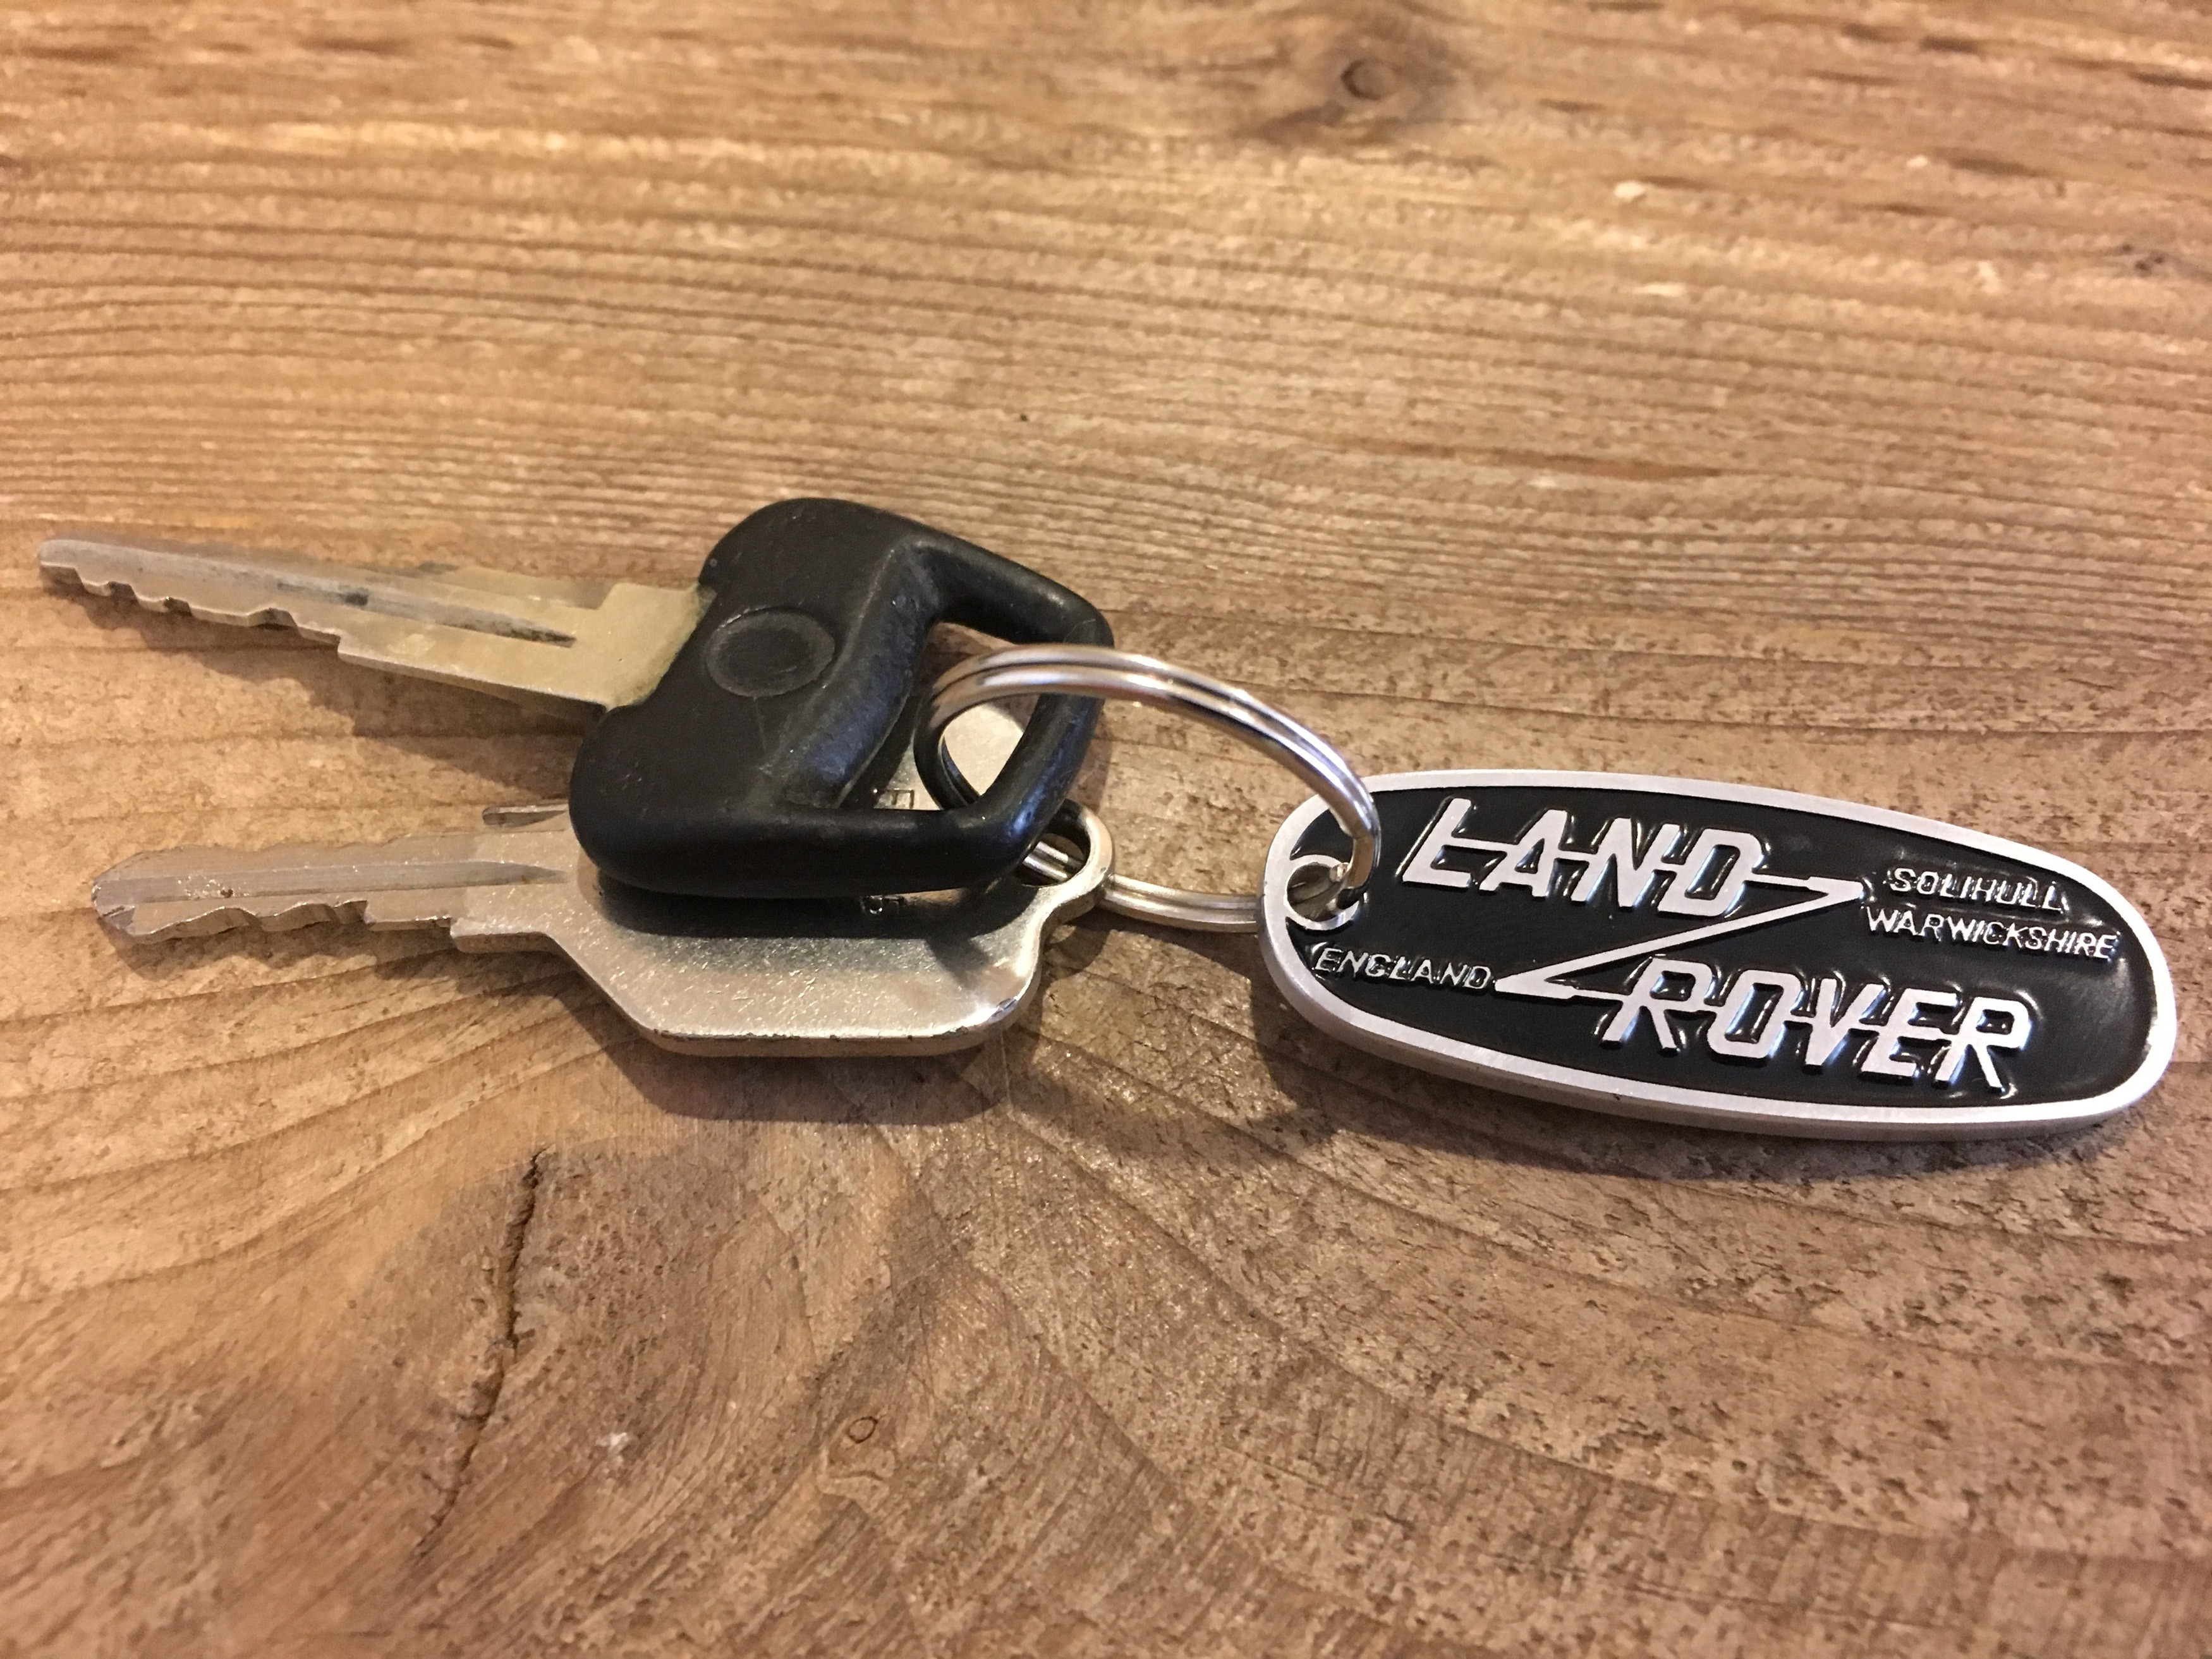 Land Rover Quot Solihull Quot Keychain